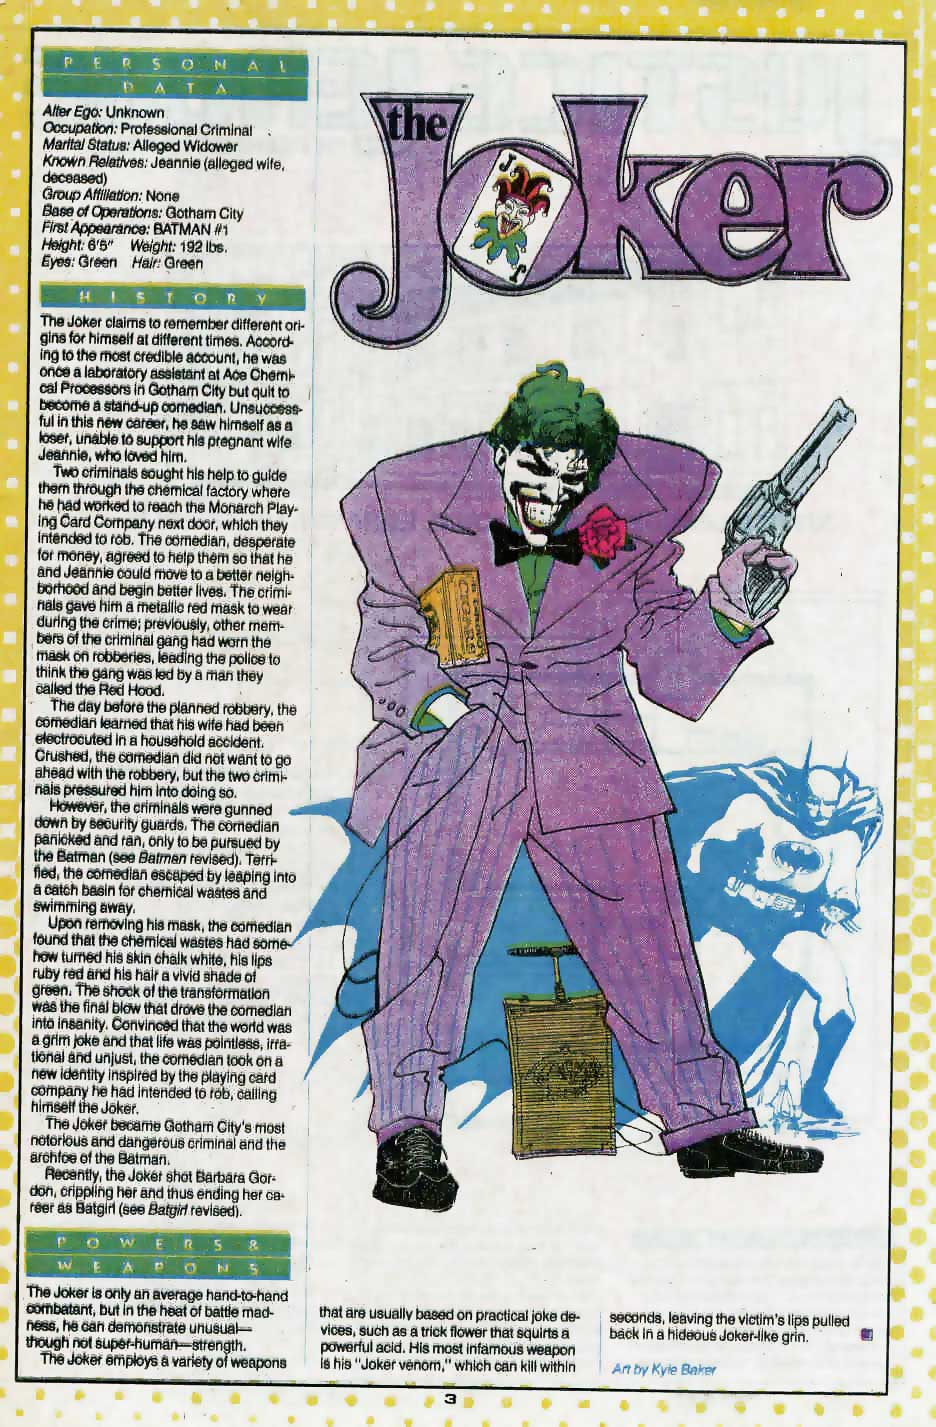 Who's Who Update 88 #2 The Joker by Kyle Baker